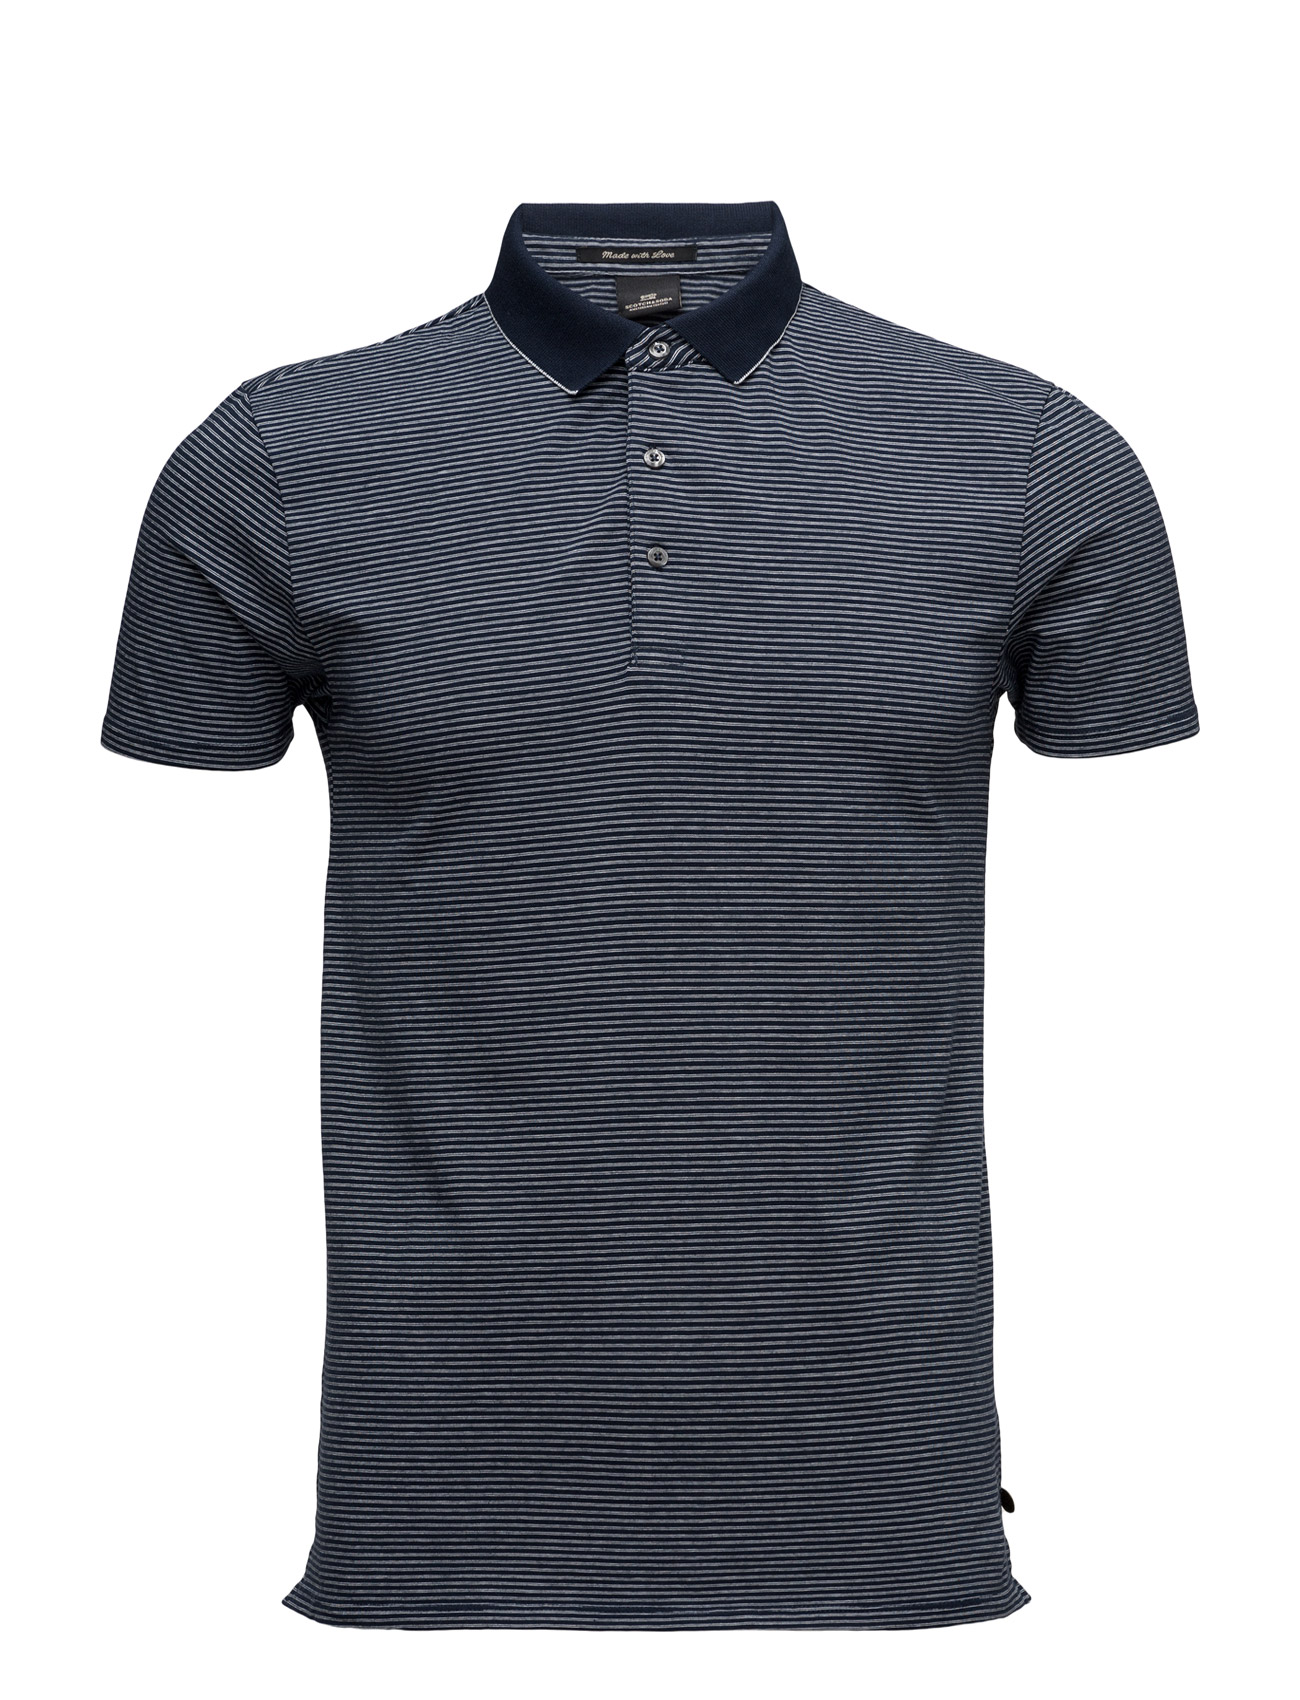 Classic Polo In Cotton/Elastane Quality Scotch & Soda Kortærmede polo t-shirts til Mænd i